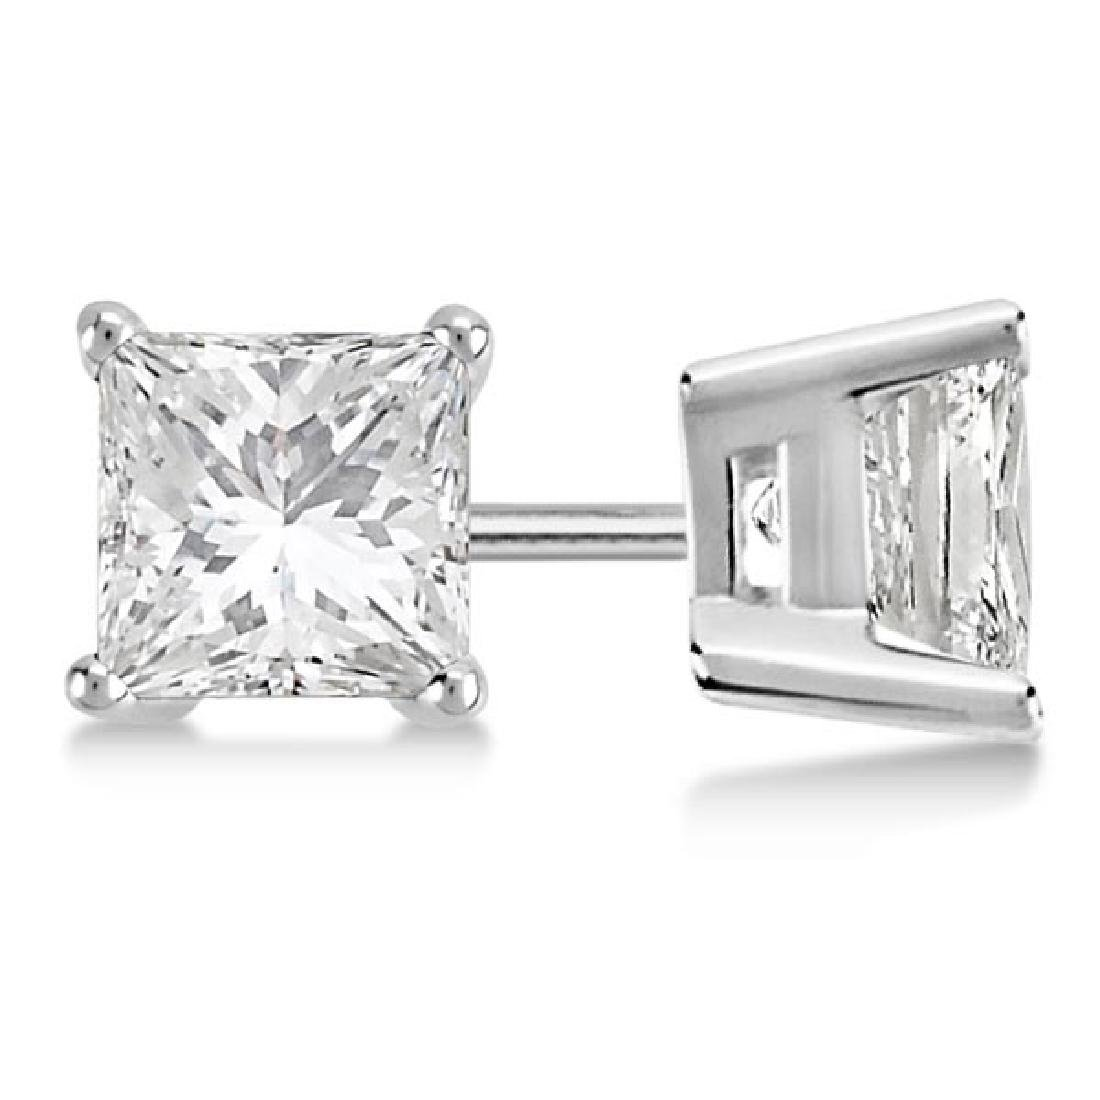 Certified 1.2 CTW Princess Diamond Stud Earrings G/SI3